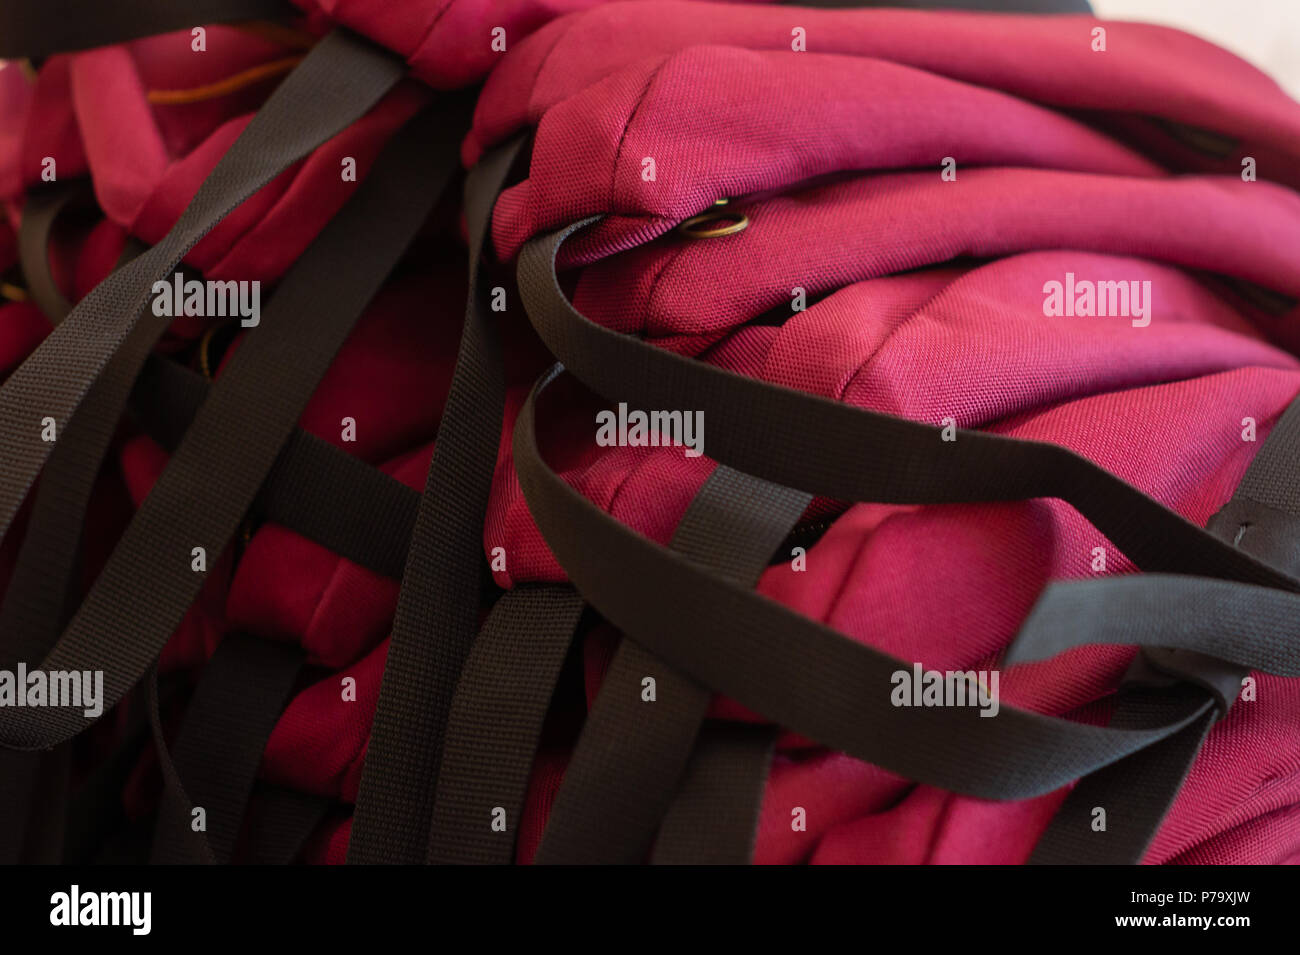 Pile of hand crafted red waist bags. - Stock Image